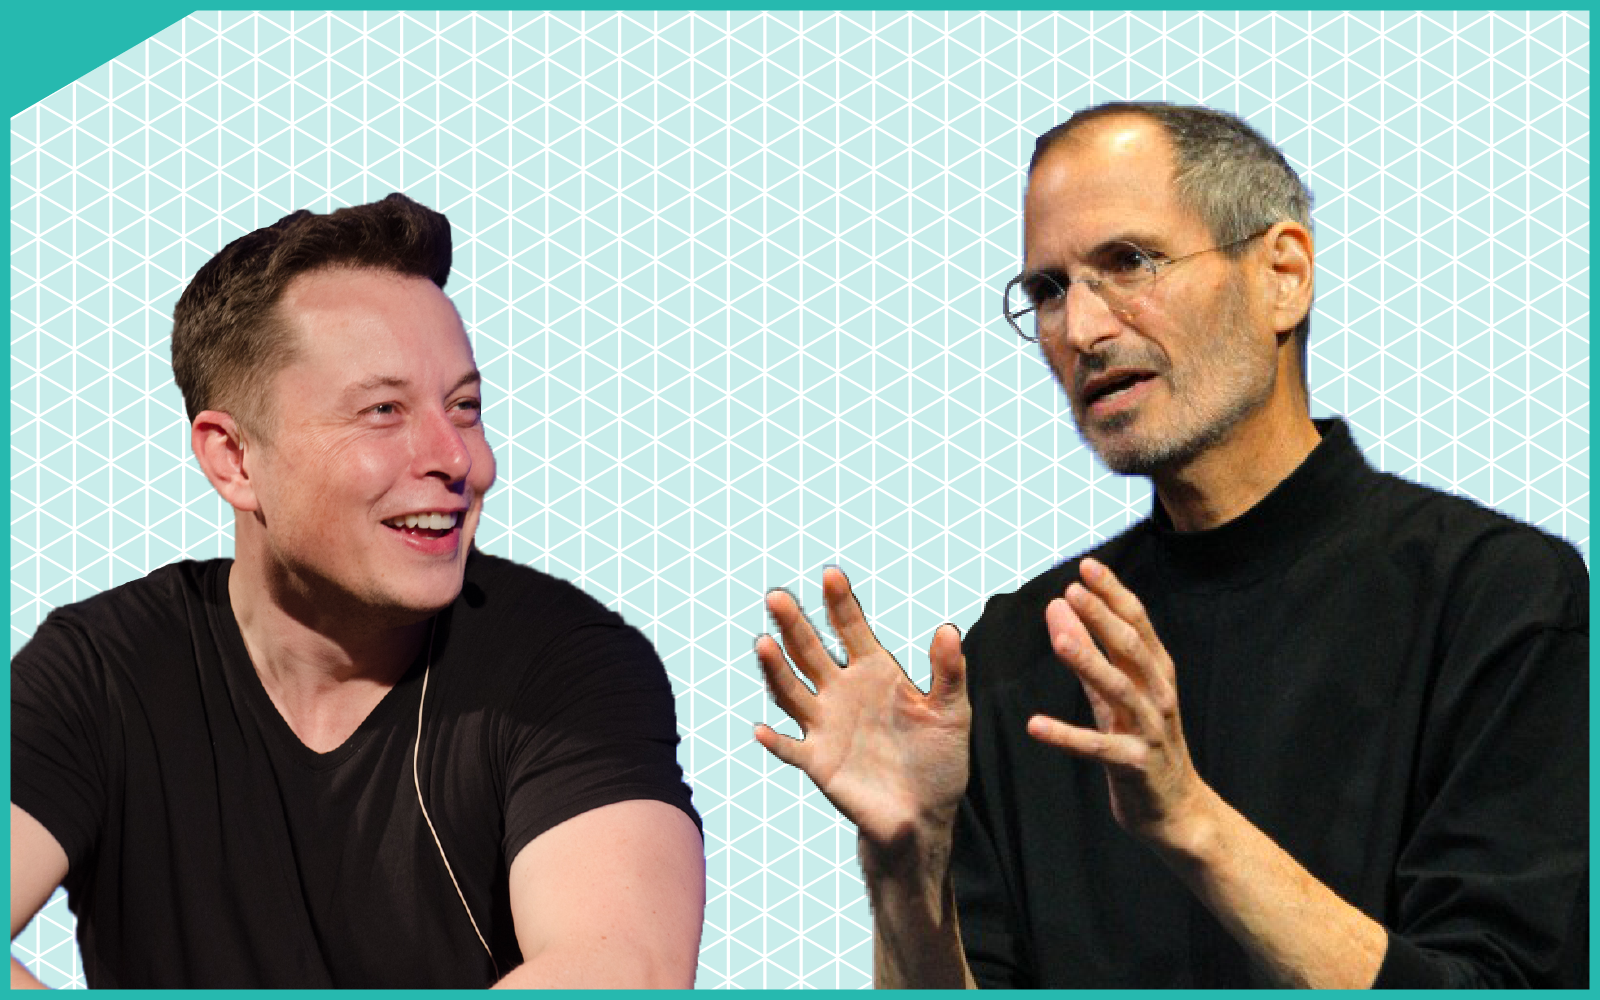 Musk and Jobs